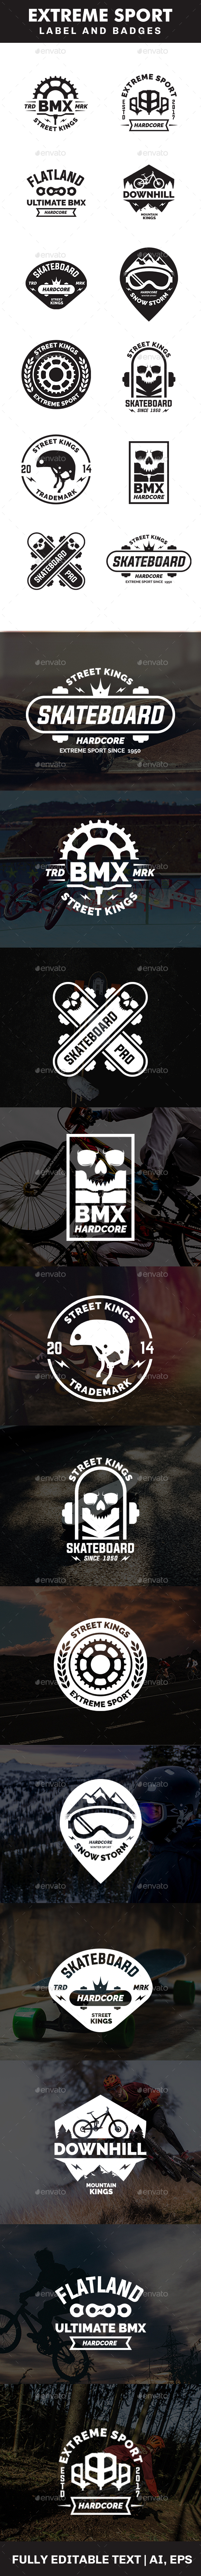 Extreme Sport Label and Badges - Badges & Stickers Web Elements